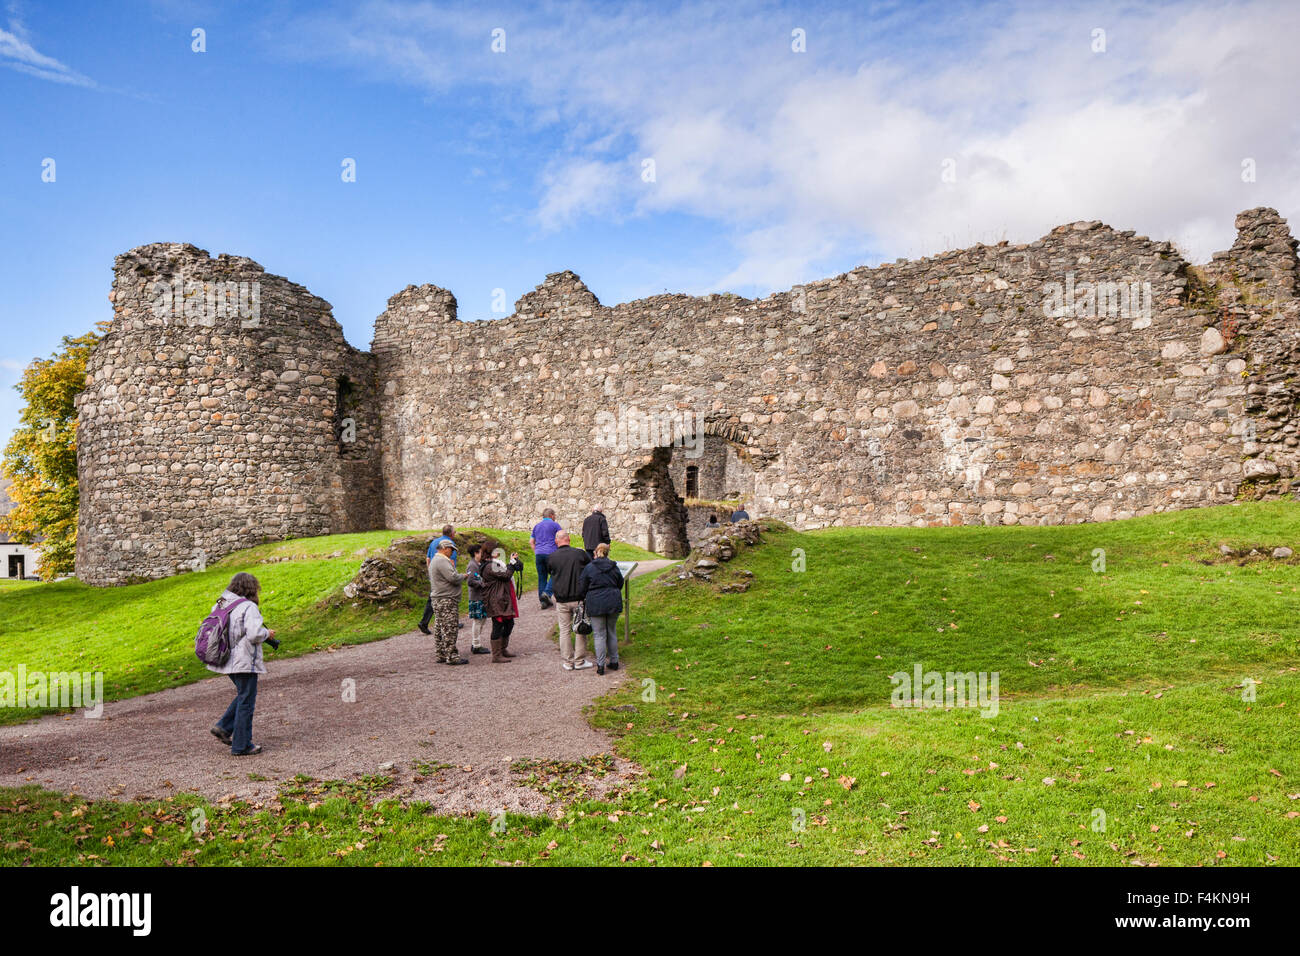 Tourists at Old Inverlochy Castle, Fort William, Highland, Scotland, UK - Stock Image